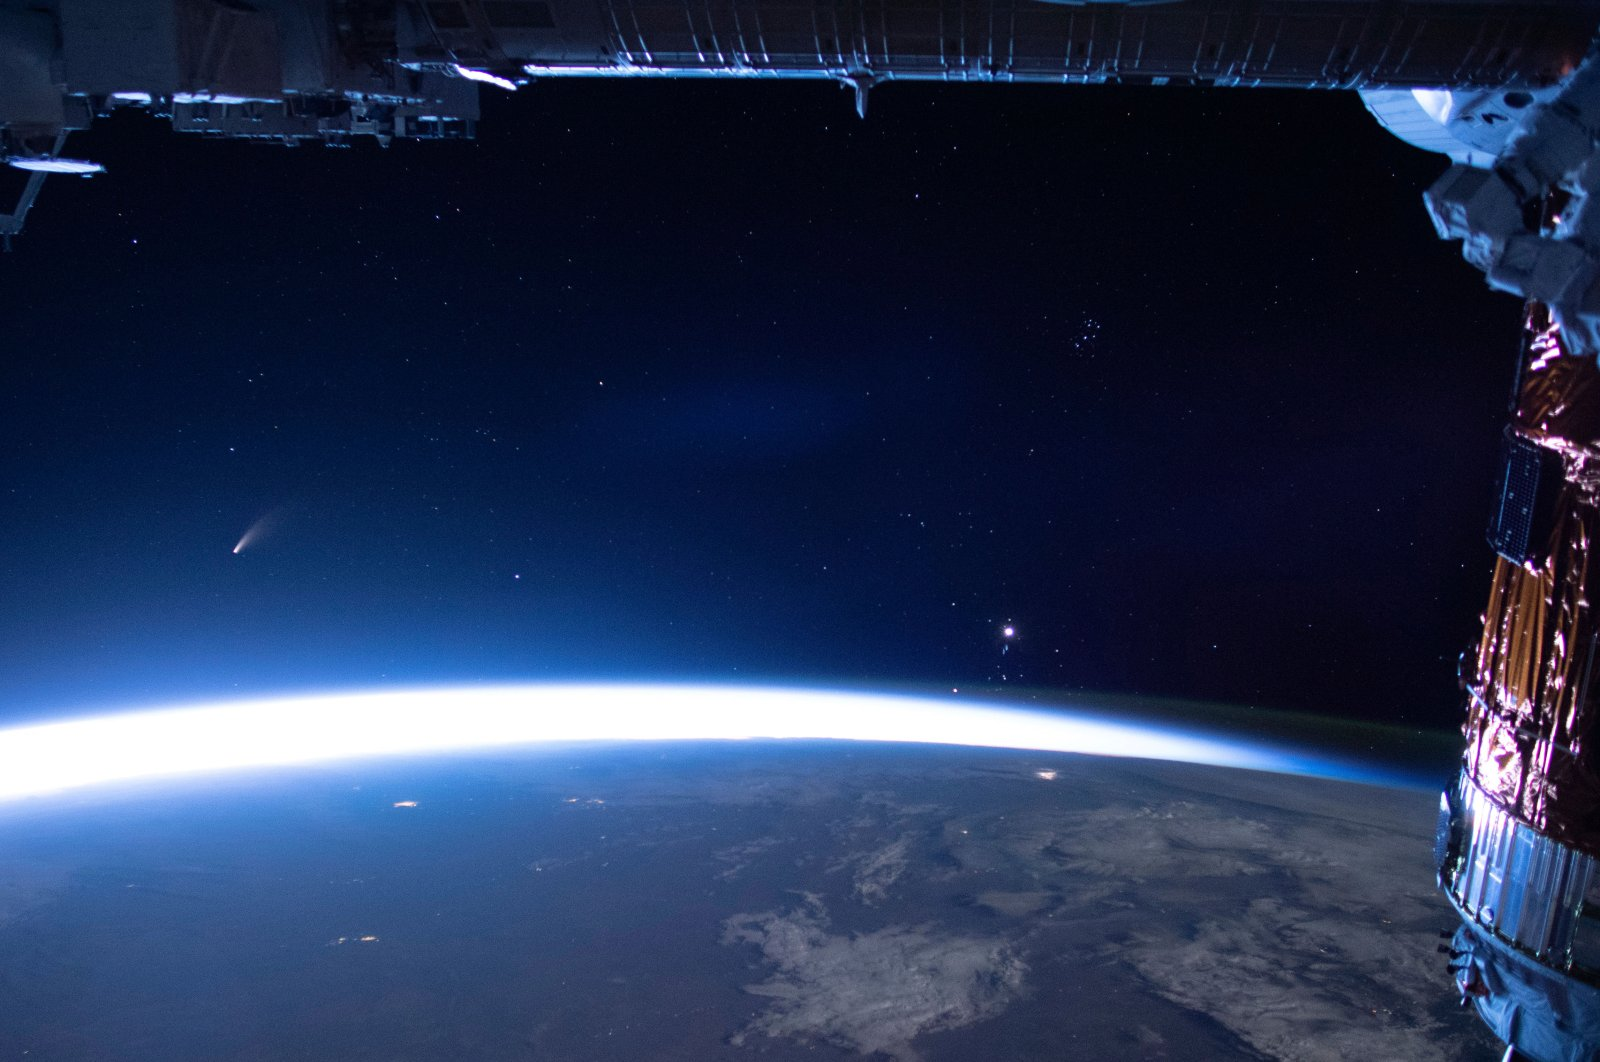 Comet Neowise (L) is seen in the eastern horizon above Earth in this image taken from the International Space Station, July 5, 2020. (NASA via AP)